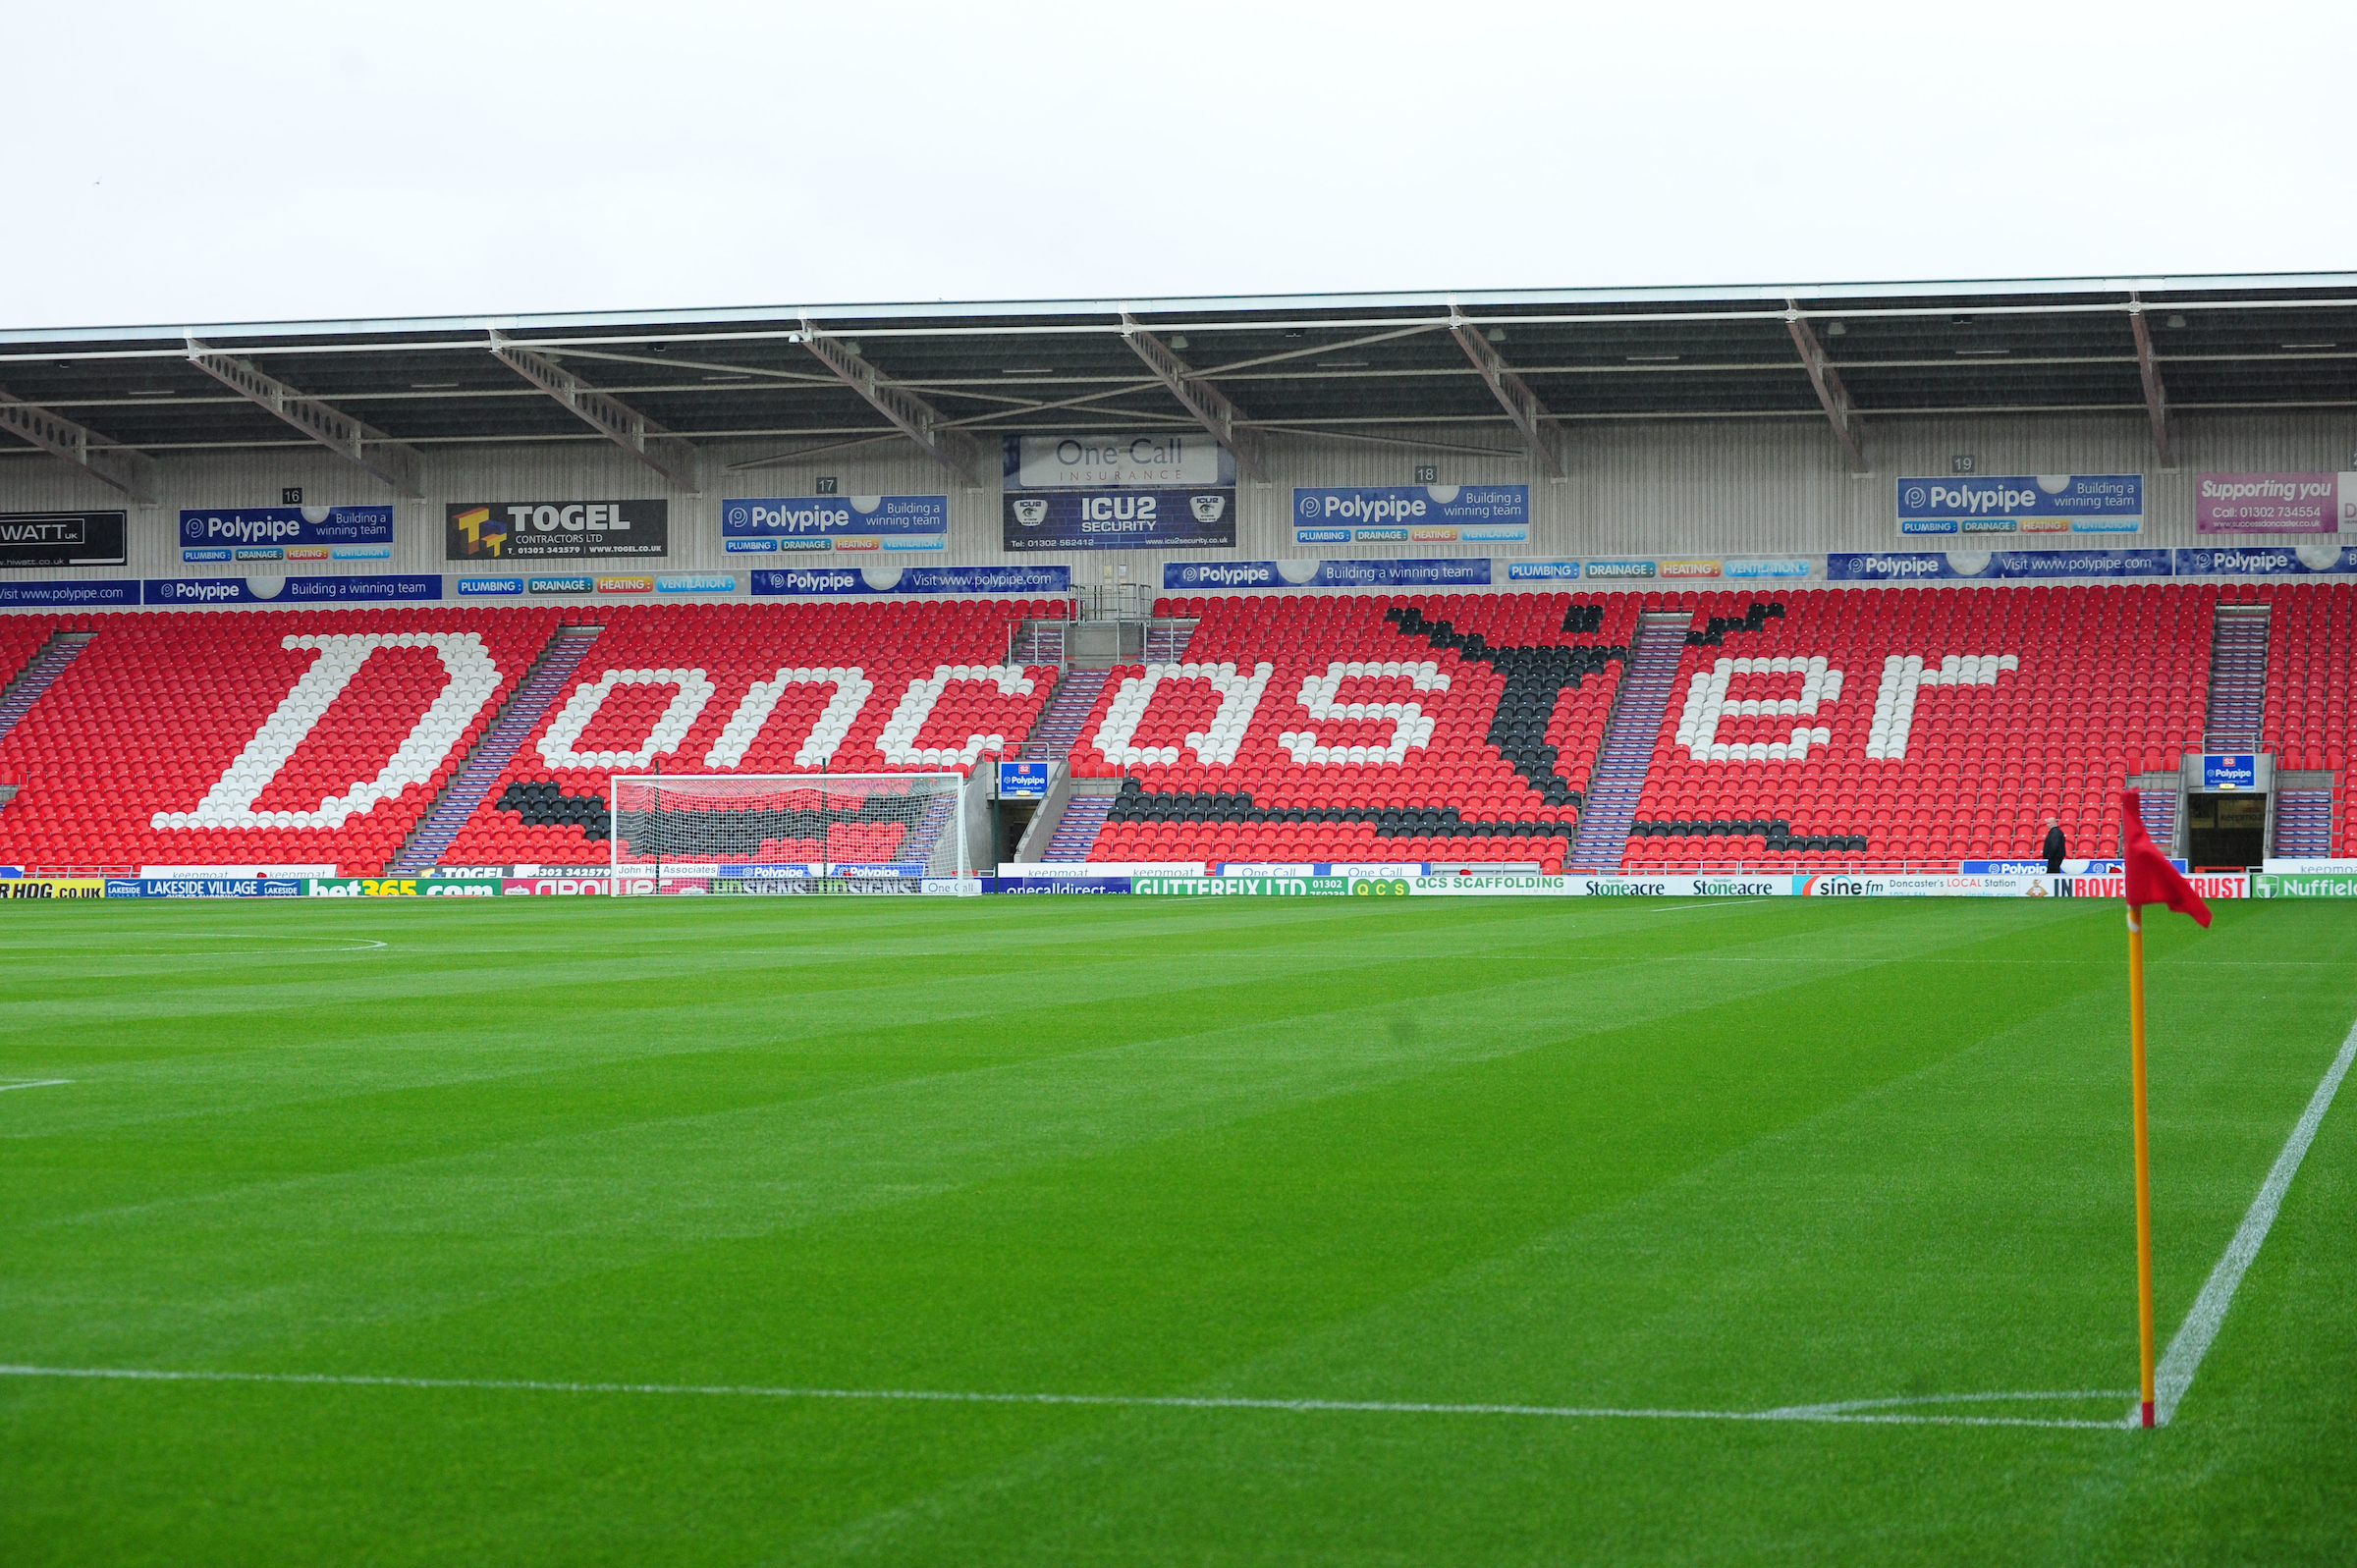 Rovers were due to travel to the Keepmoat Stadium next weekend